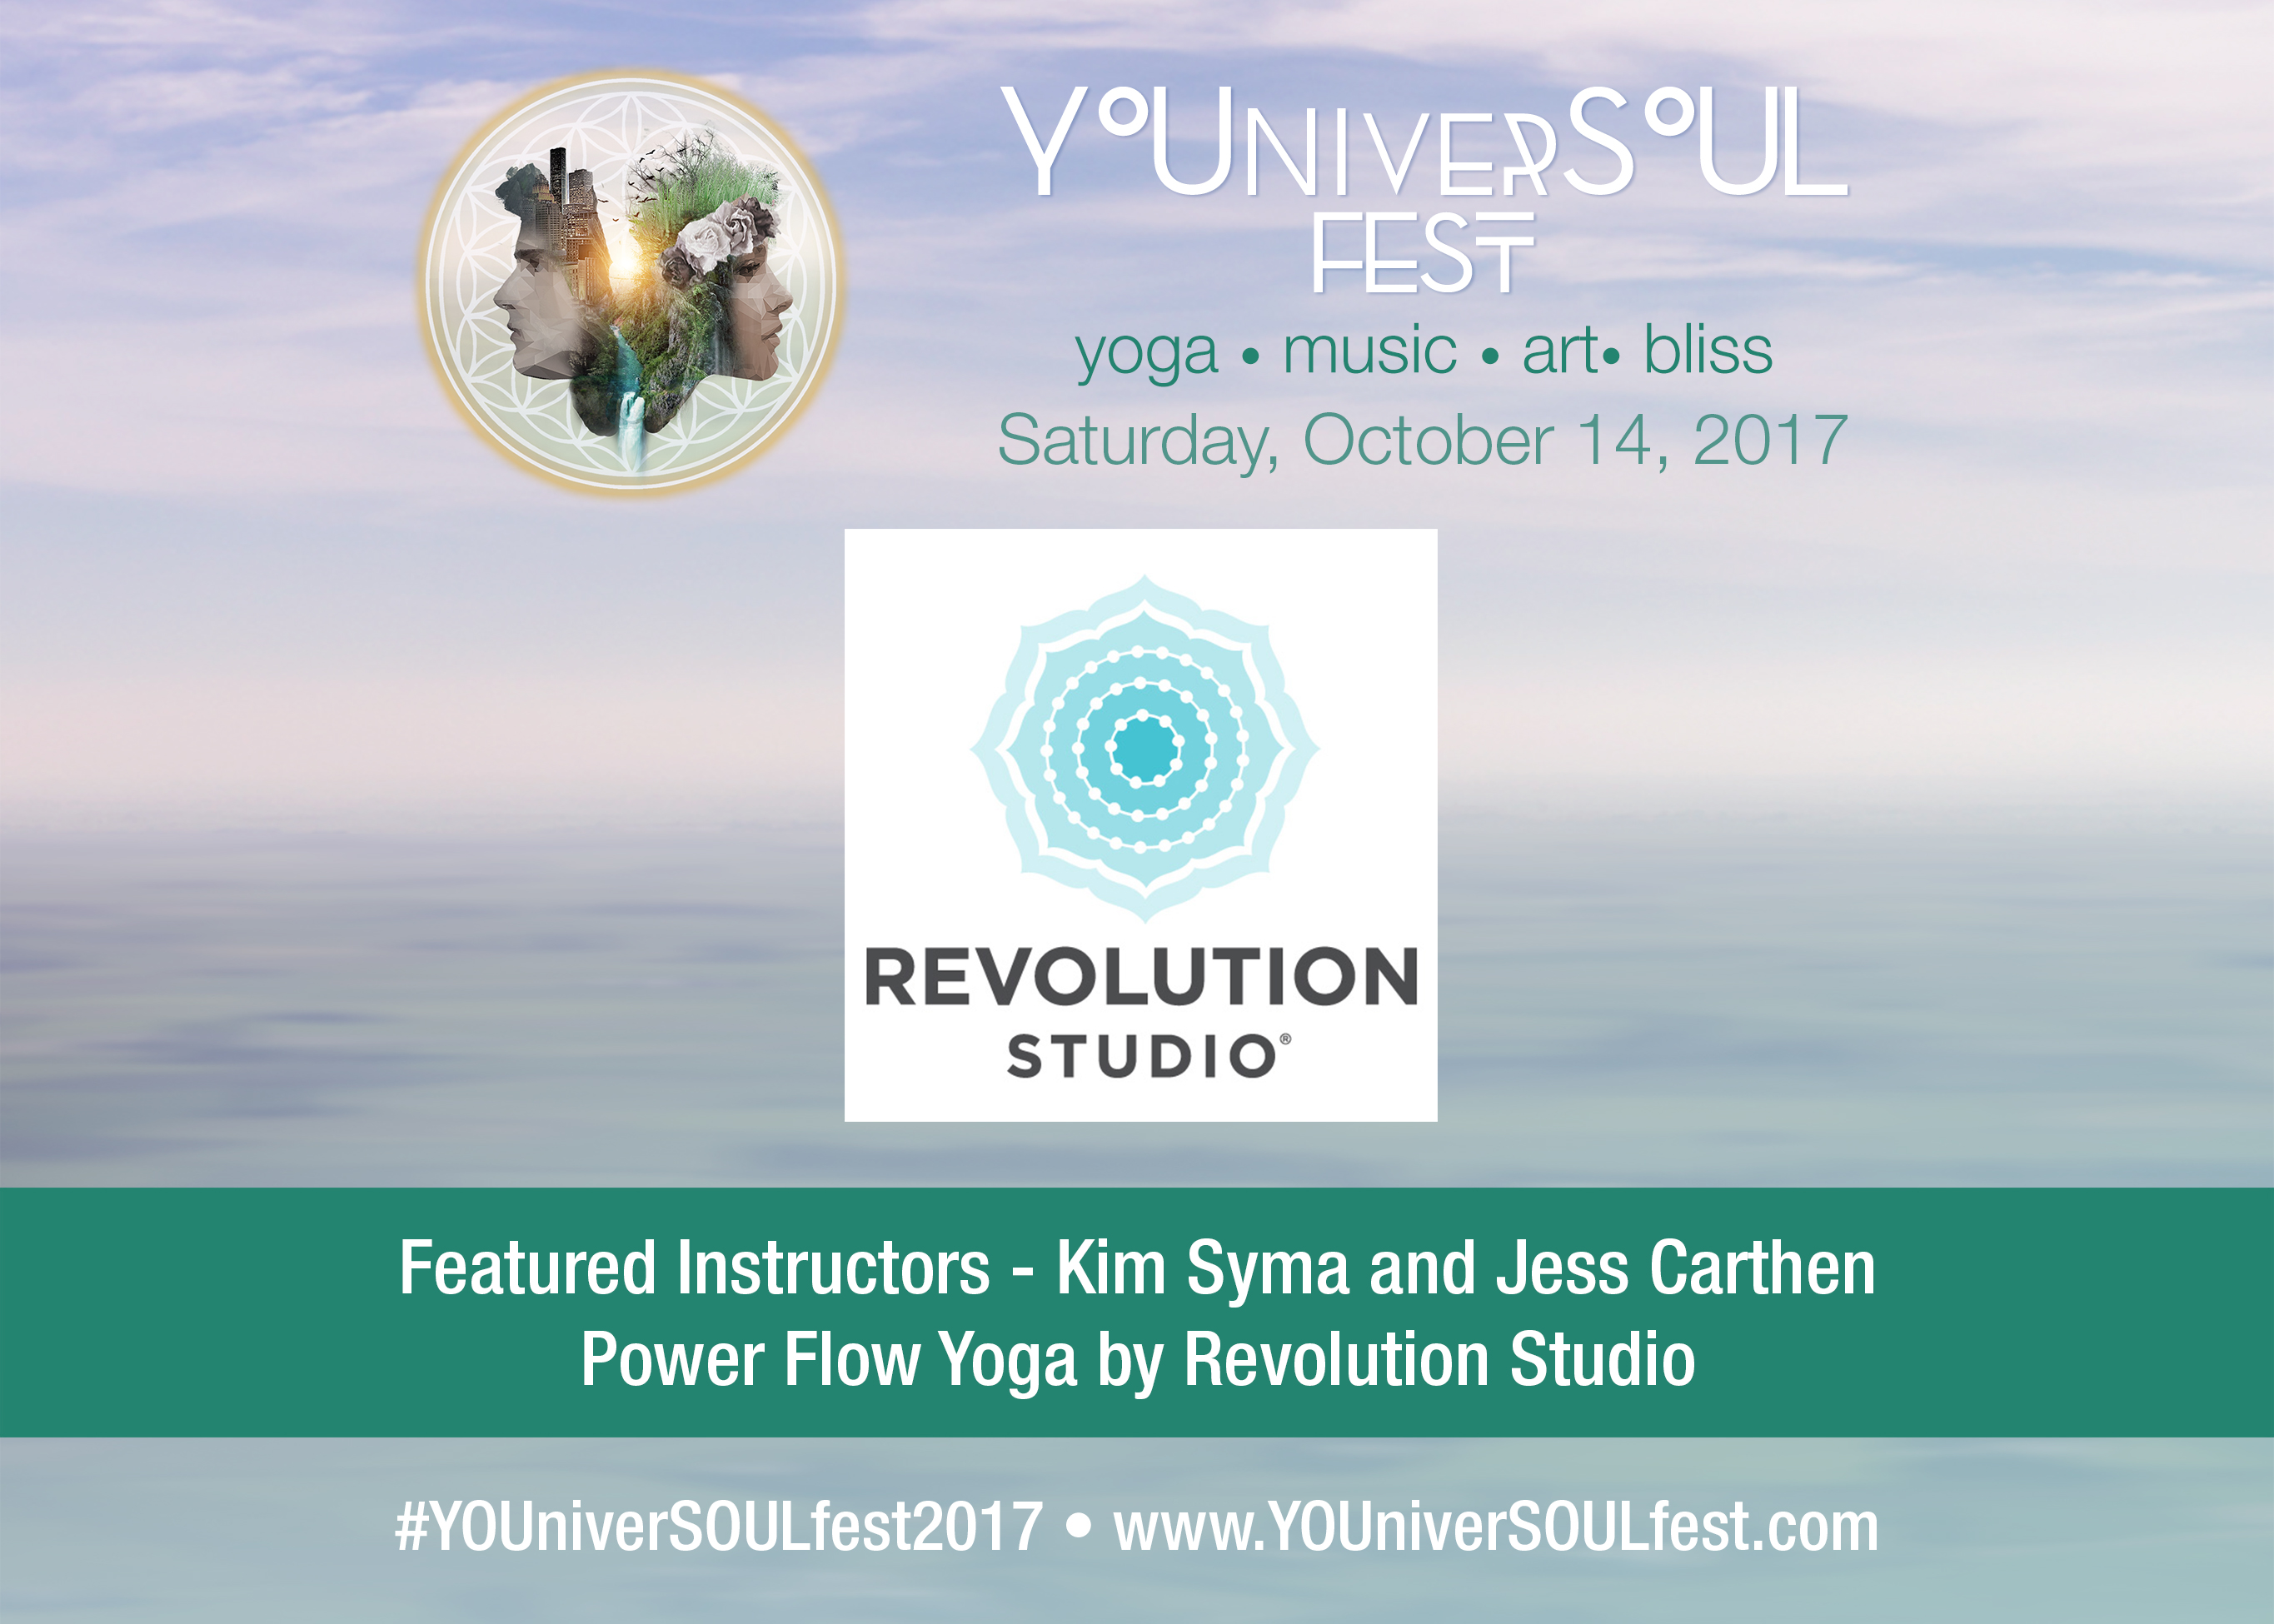 Power Flow Yoga by Revolution Studio featuring Kim Syma and Jess Carthen